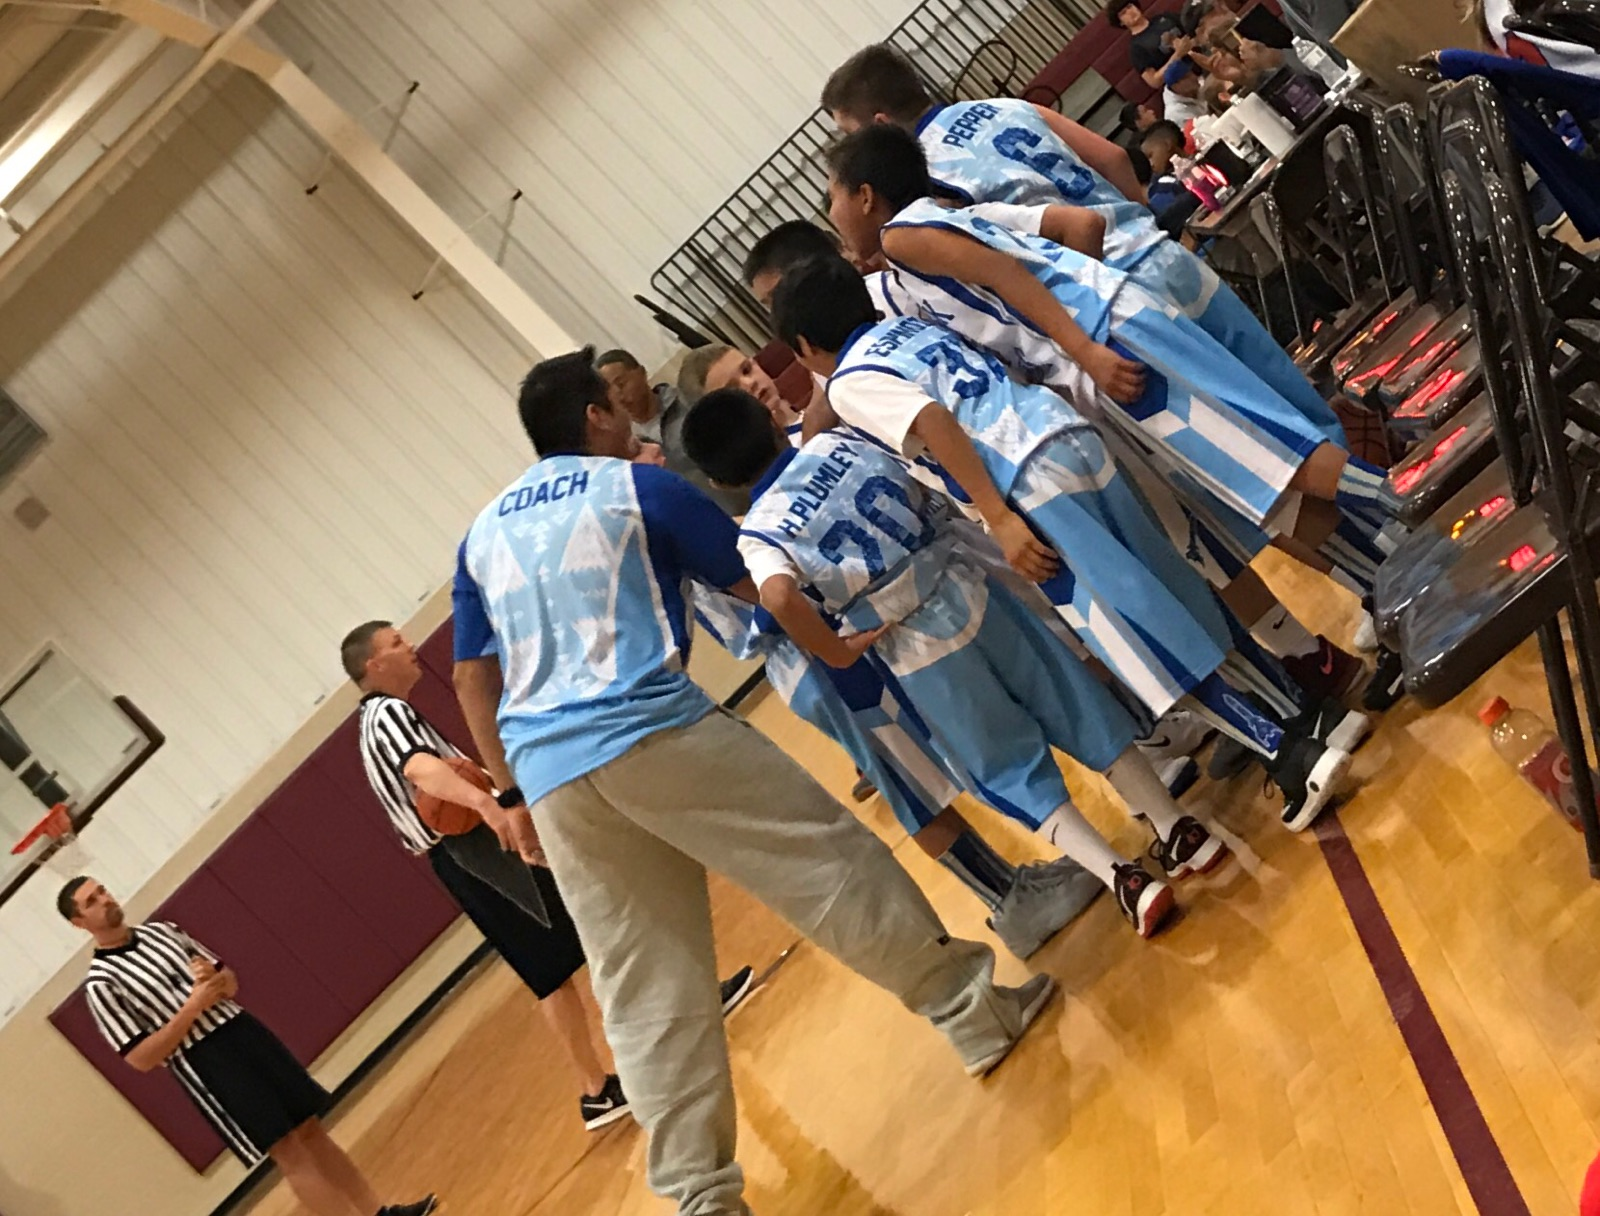 White blue sky blue Youth Basketball Uniforms jerseys and shorts